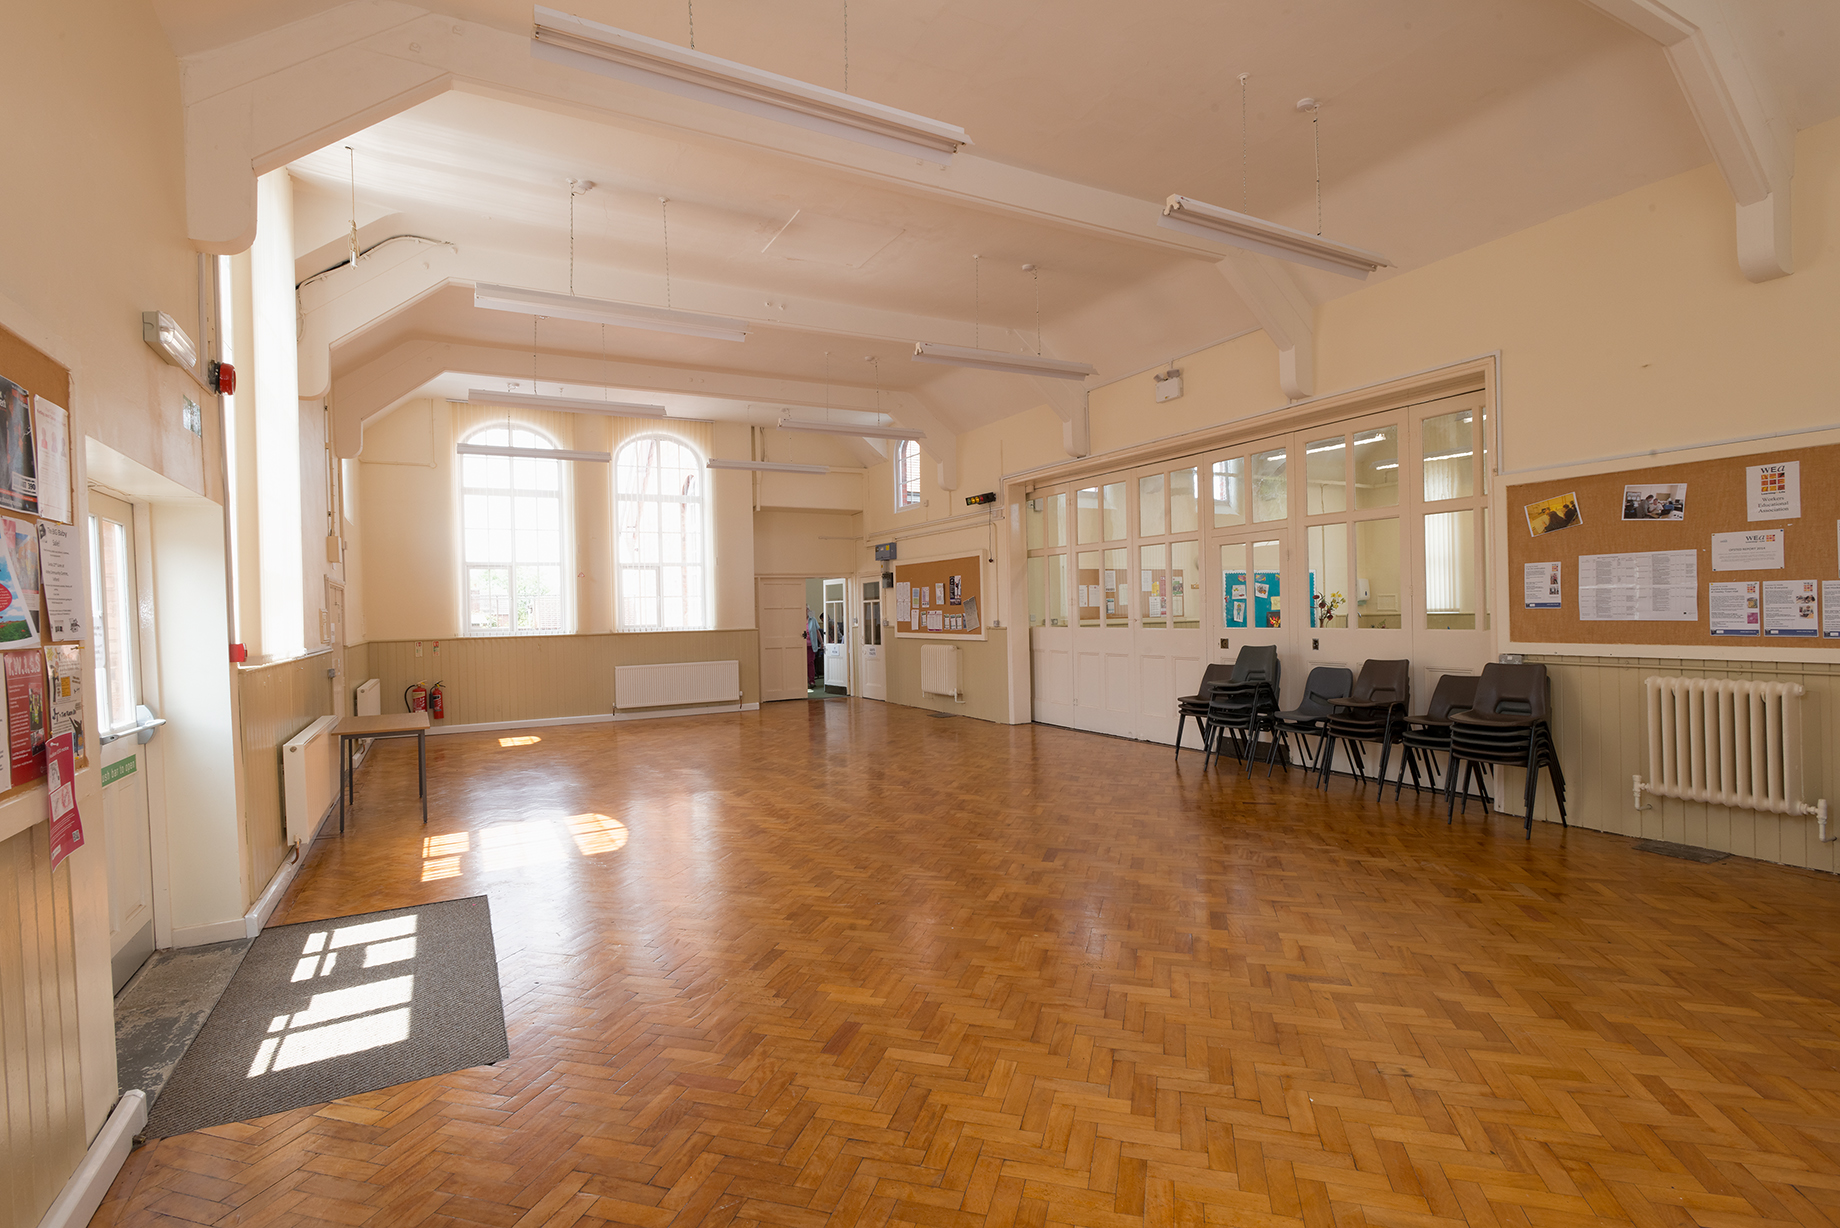 Room For Hire in Telford